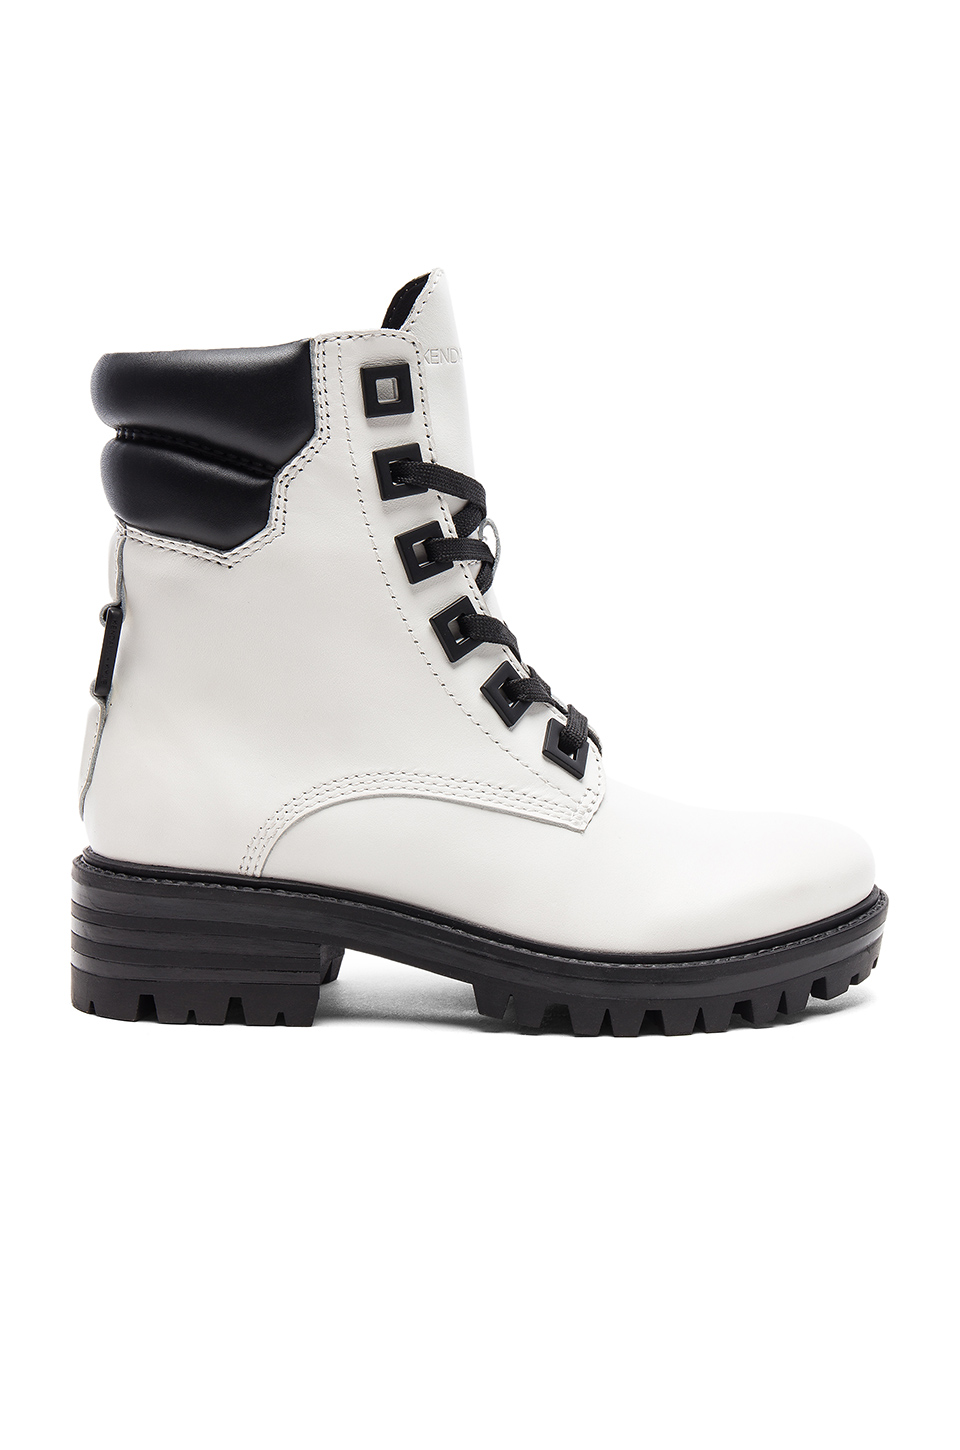 KENDALL + KYLIE East Boot in White